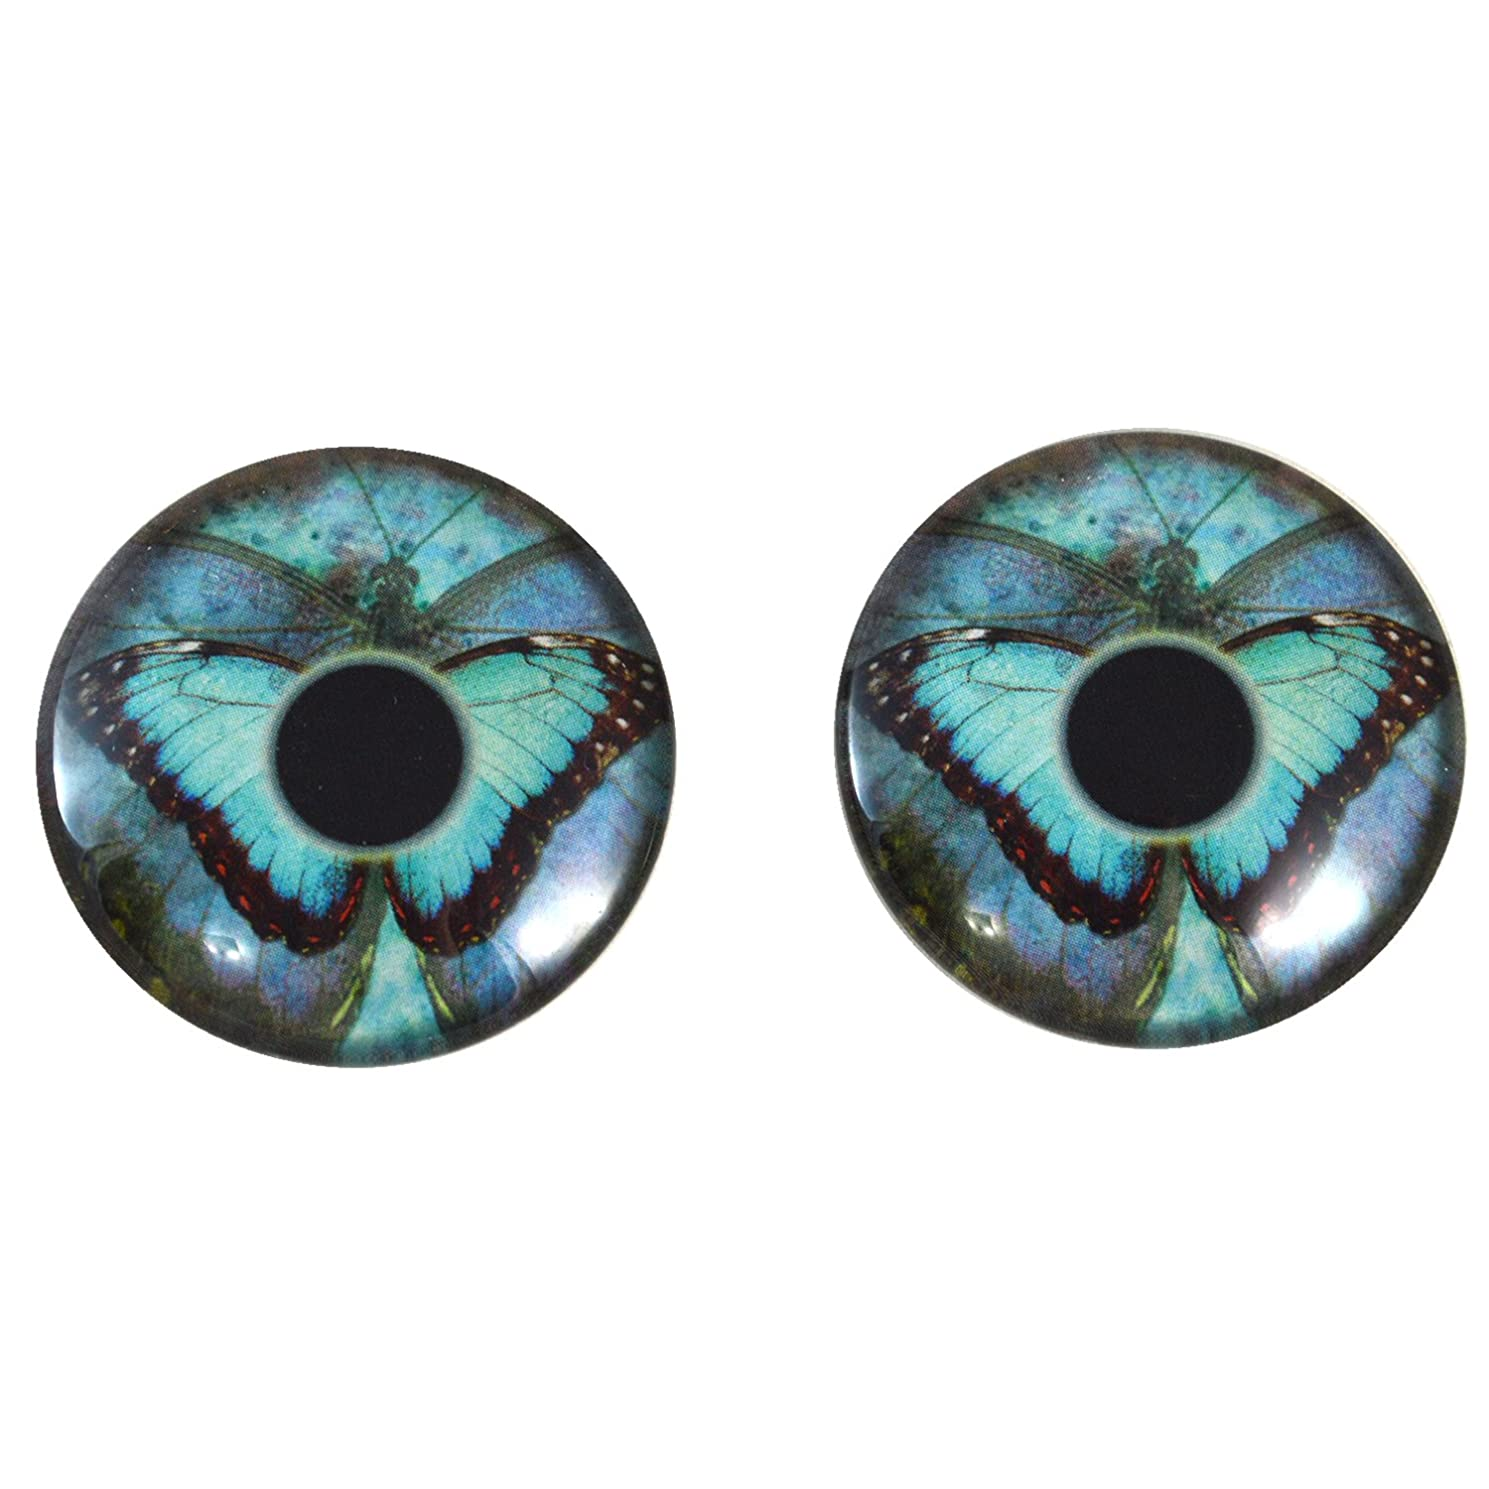 40mm Pair of Big Blue Butterfly Glass Eyes, for Jewelry Making, Arts Dolls, Sculptures, and More